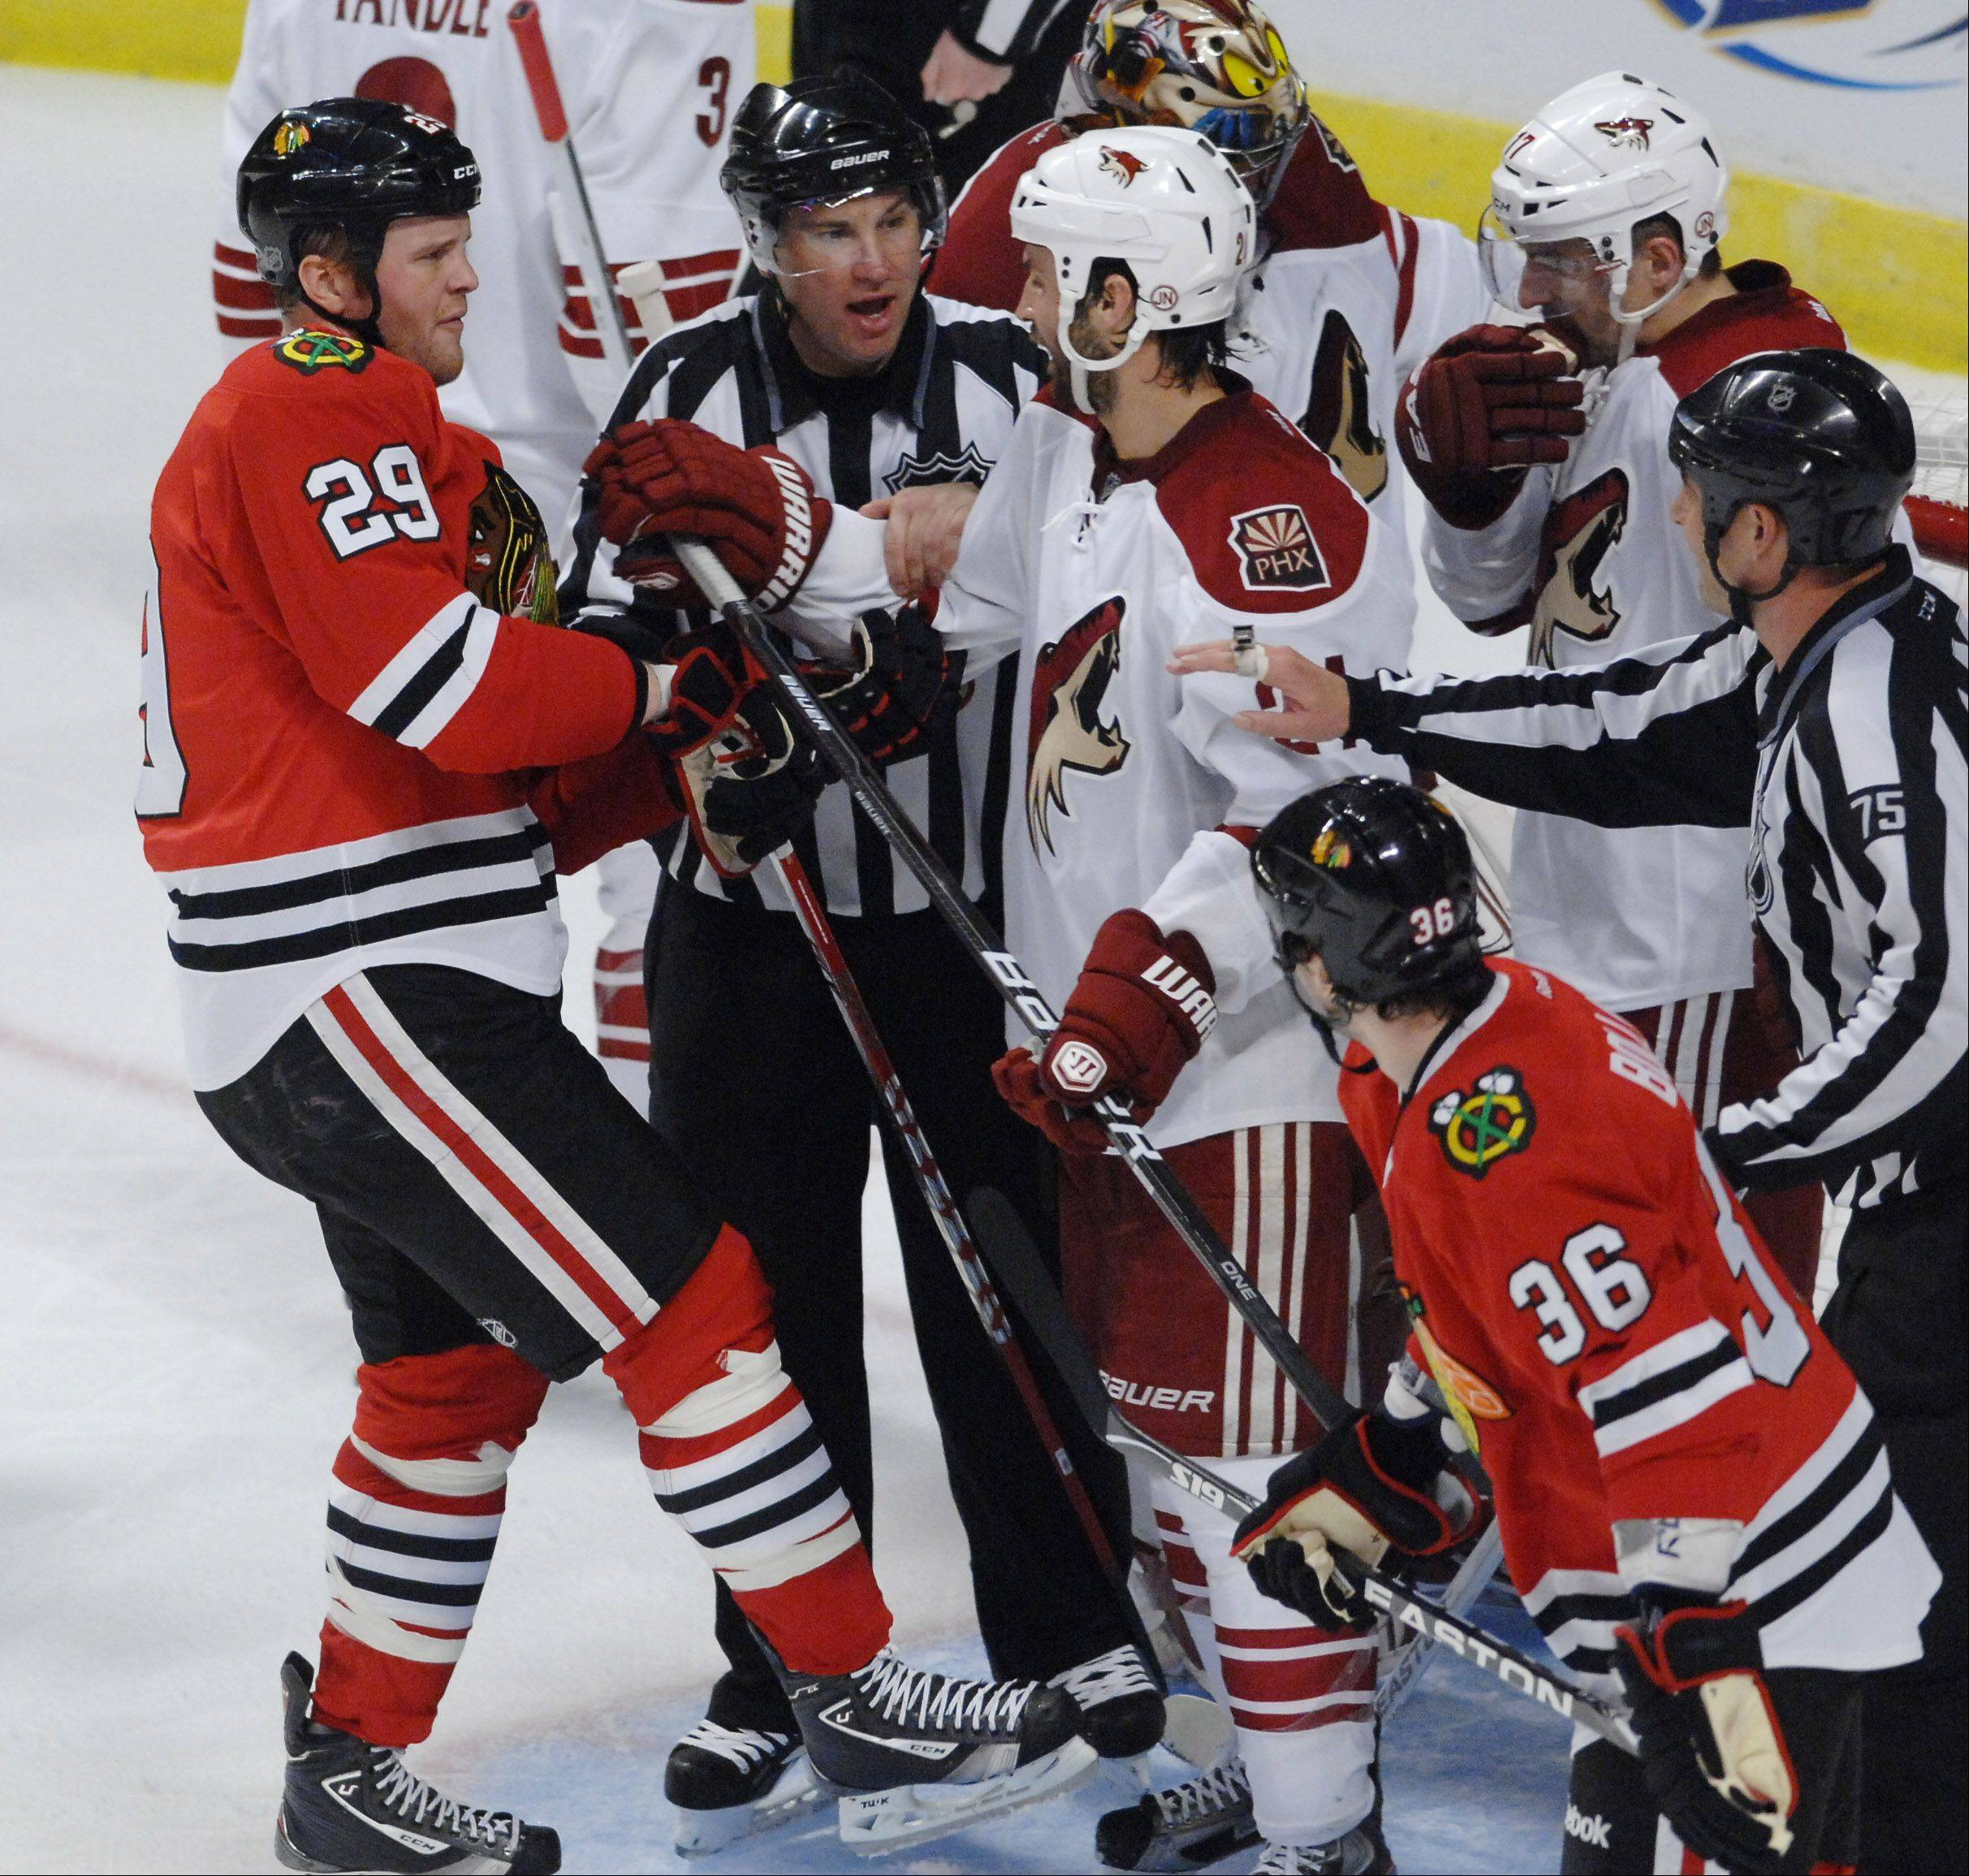 Chicago Blackhawks' left wing Viktor Stalberg faces a group of Phoenix Coyotes.